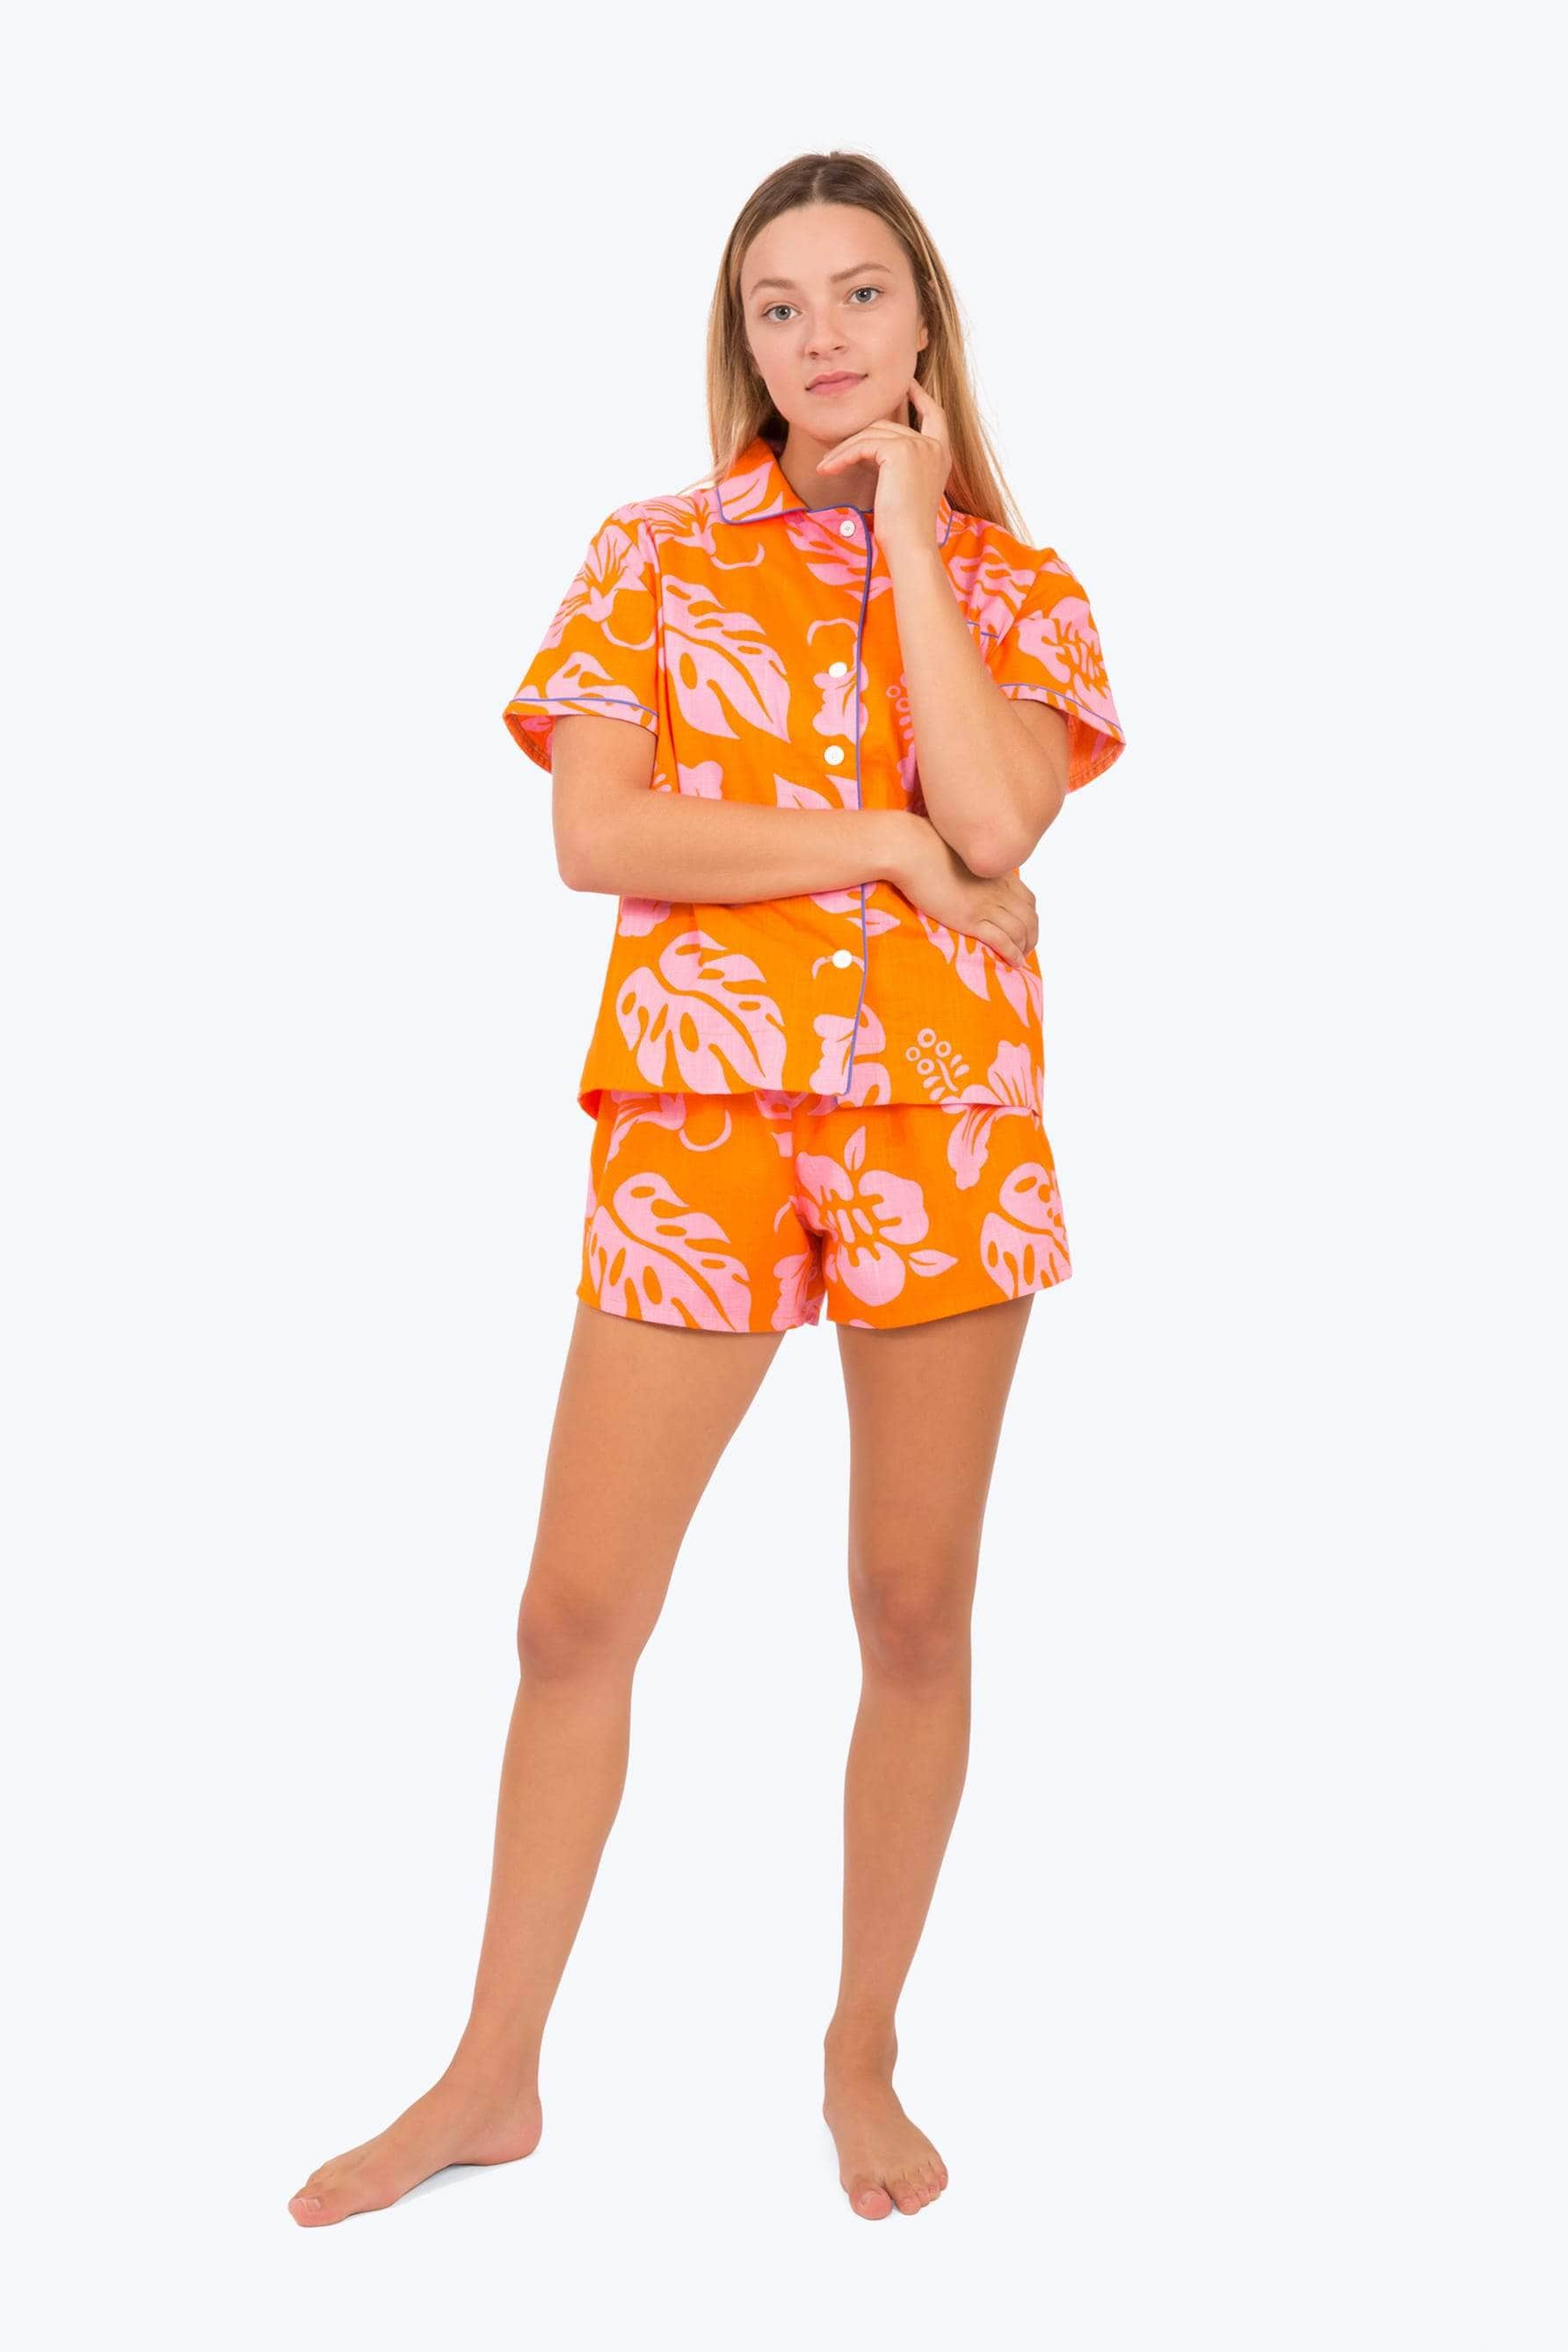 Sleepy Jones Aloha orange and pink Hawaiian print cotton pajama set with short sleeves and shorts, front view, on model